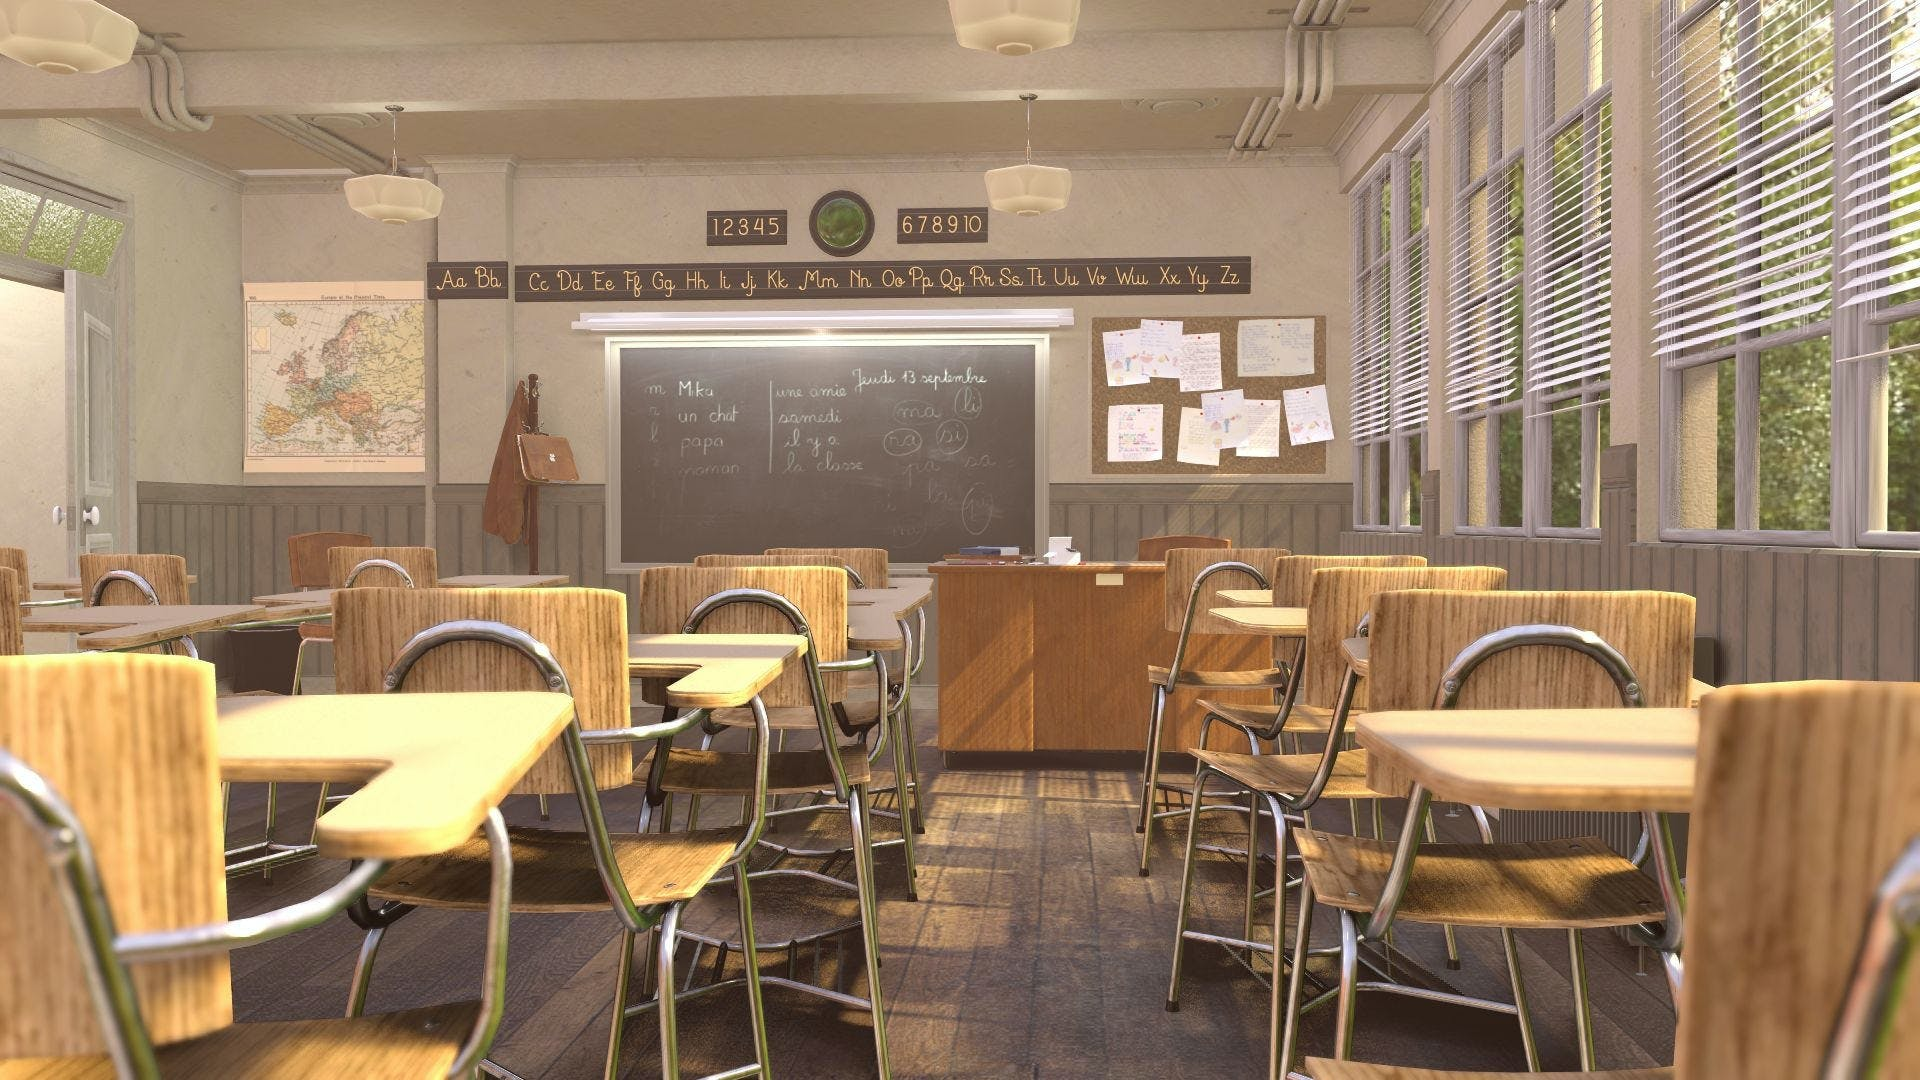 A high-quality render of the Blender Classroom scene.